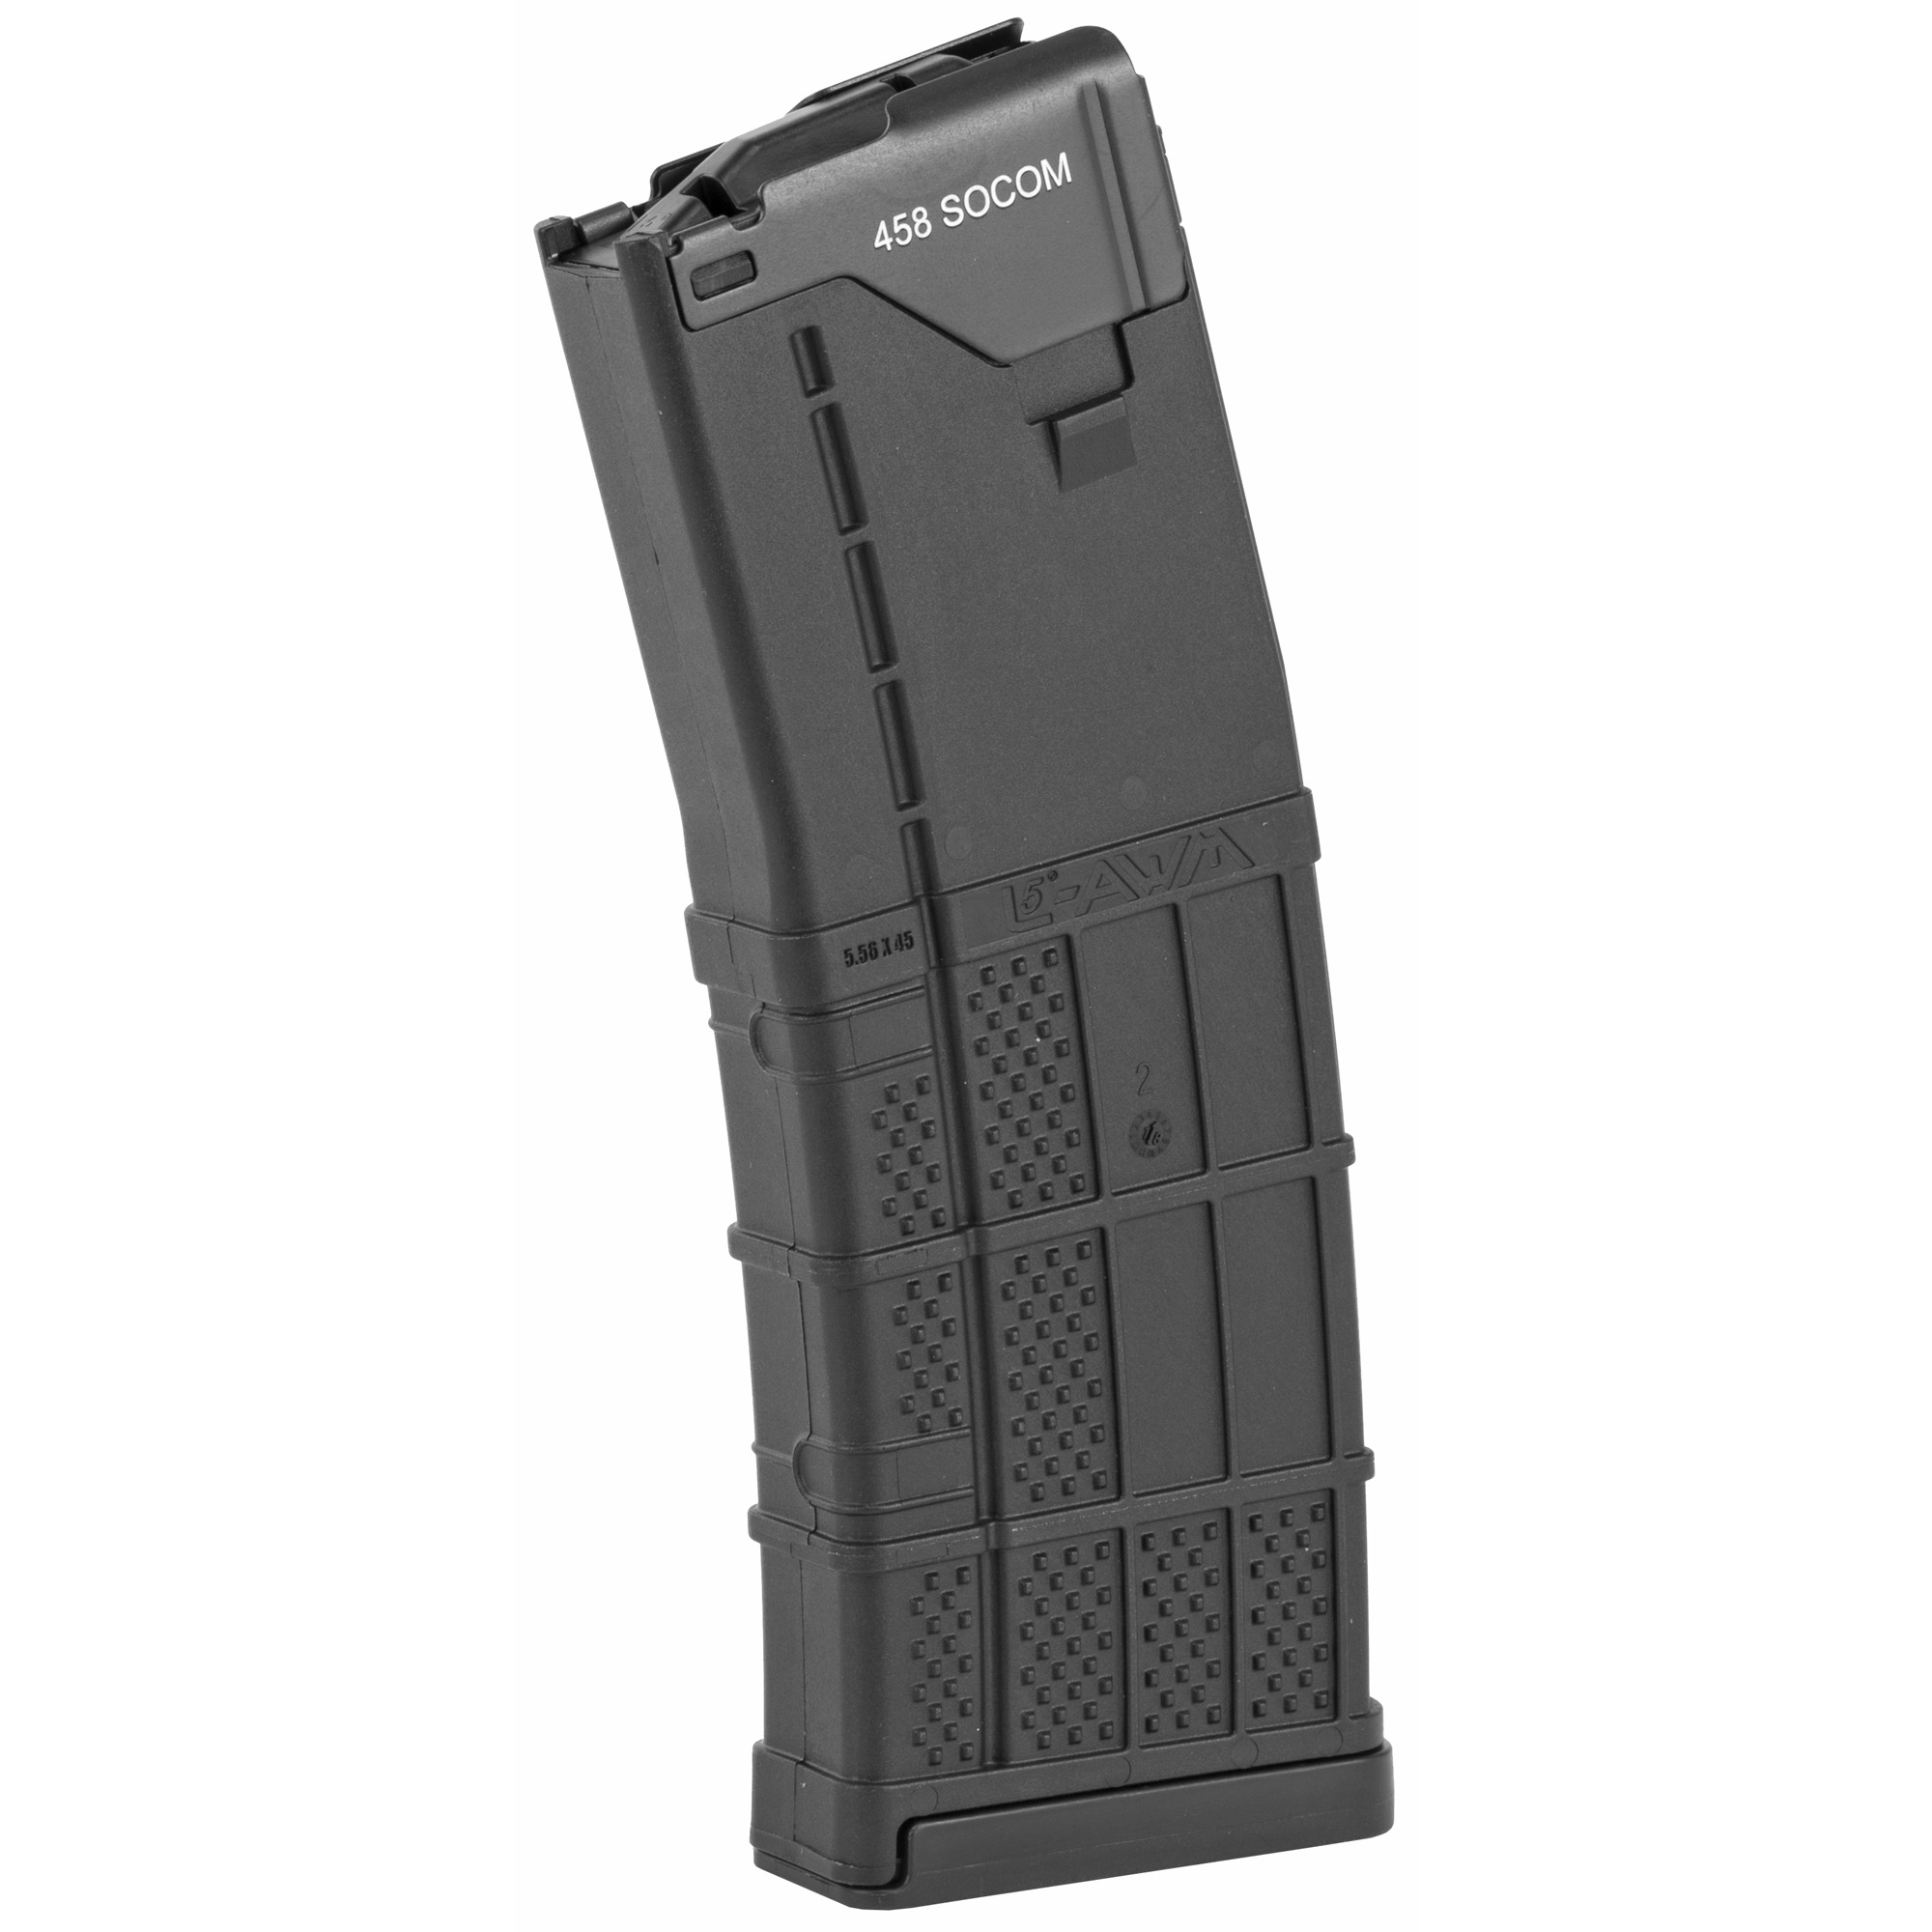 """After extensive testing of magazines for the 458 SOCOM"""" the Lancer L5 Advanced Warfighter Magazine was the top choice due to the polymer body and steel feed lips. The CMMG-modified Lancer L5-AWM takes this top of the line magazine and perfects it for the wide range of 458 SOCOM ammunition on the market by modifying the way the feed lips hold the ammo. The feed lips are not machined or weakened. (Laser Engraved 458 SOCOM)"""